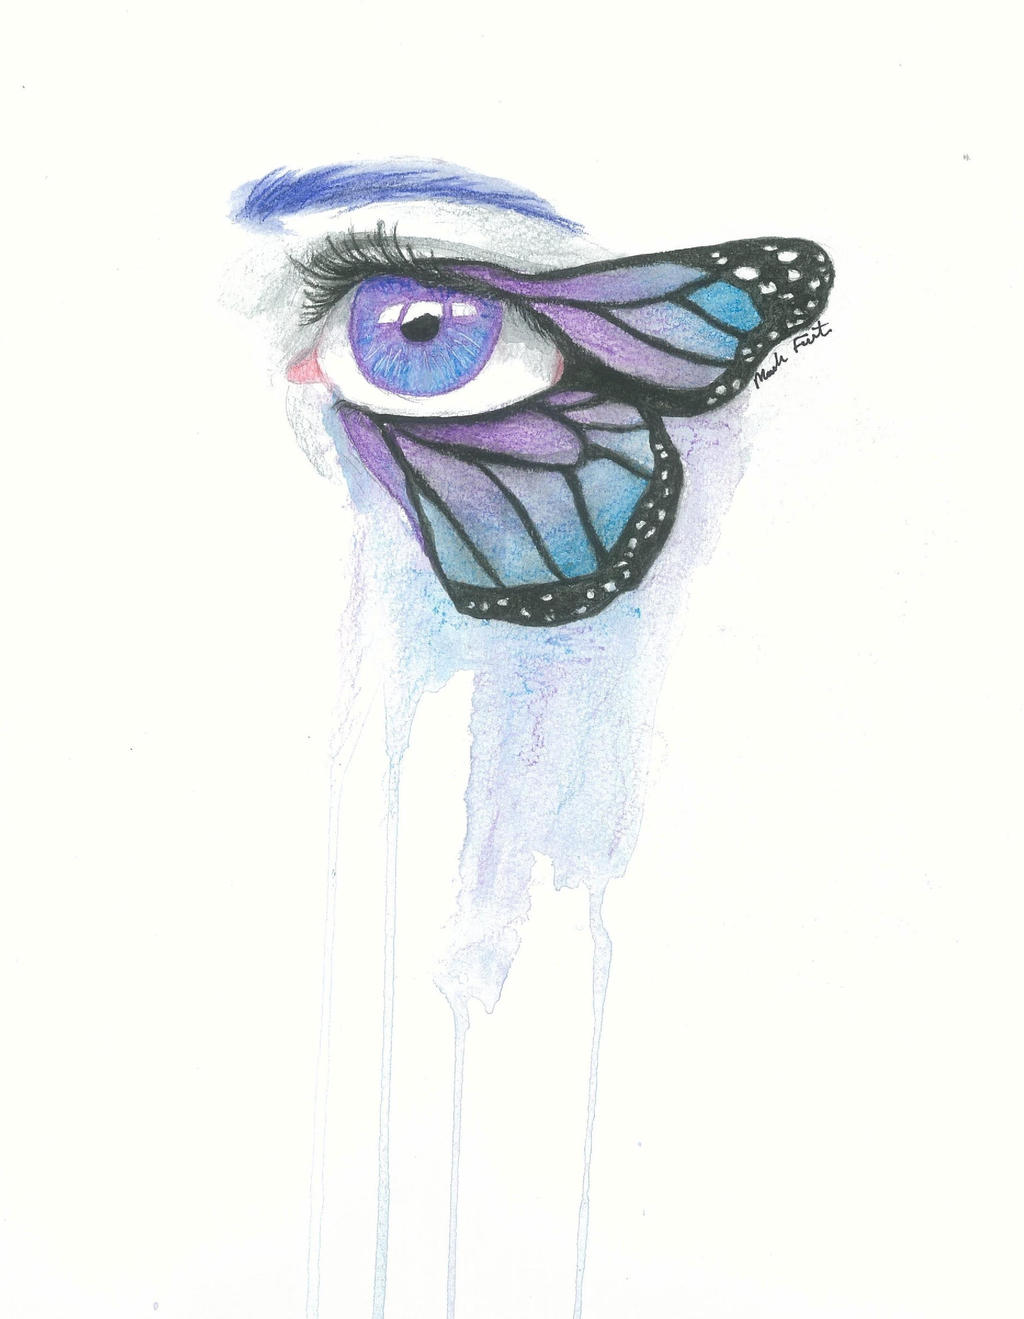 Butterfly Eye by MoaVBritannia